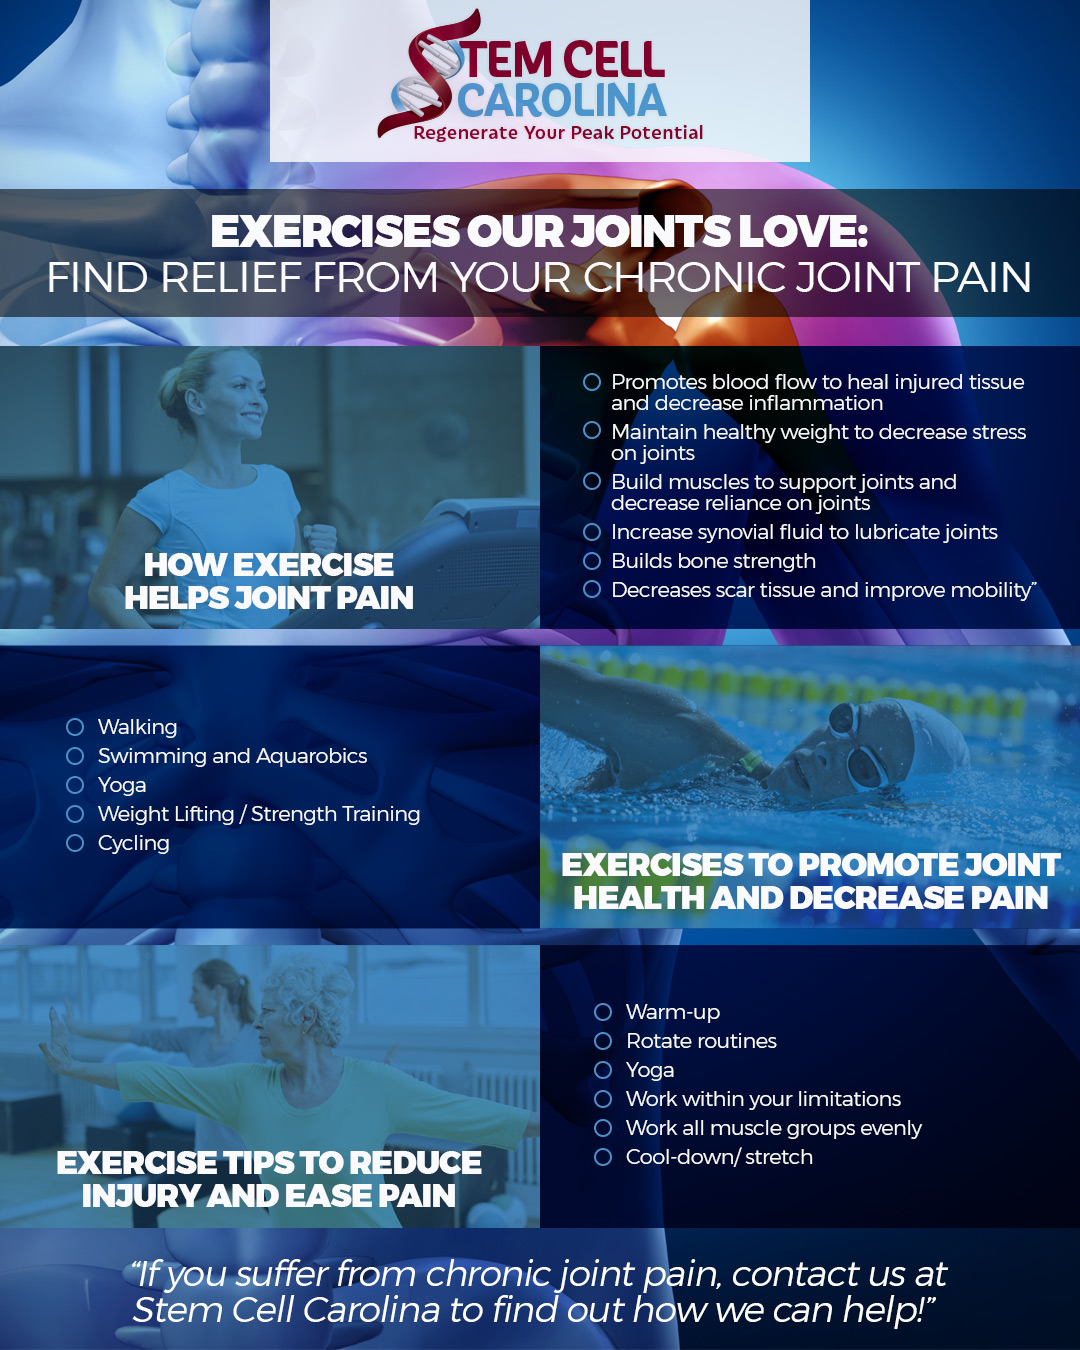 exercises to improve joint pain